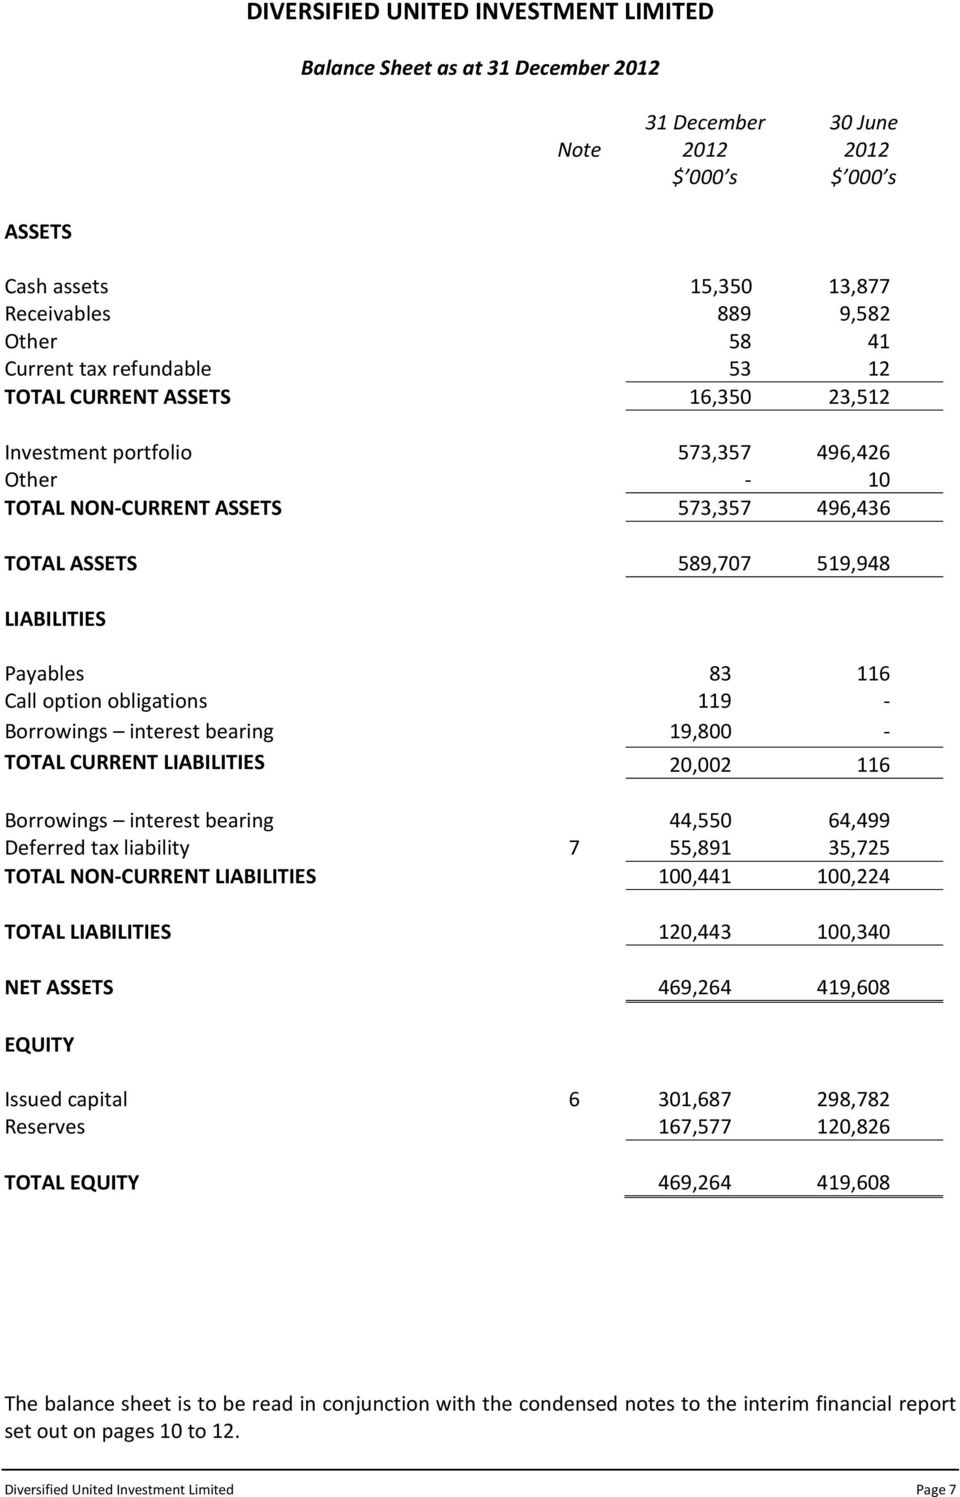 LIABILITIES 20,002 116 Borrowings interest bearing 44,550 64,499 Deferred tax liability 7 55,891 35,725 TOTAL NON-CURRENT LIABILITIES 100,441 100,224 TOTAL LIABILITIES 120,443 100,340 NET ASSETS